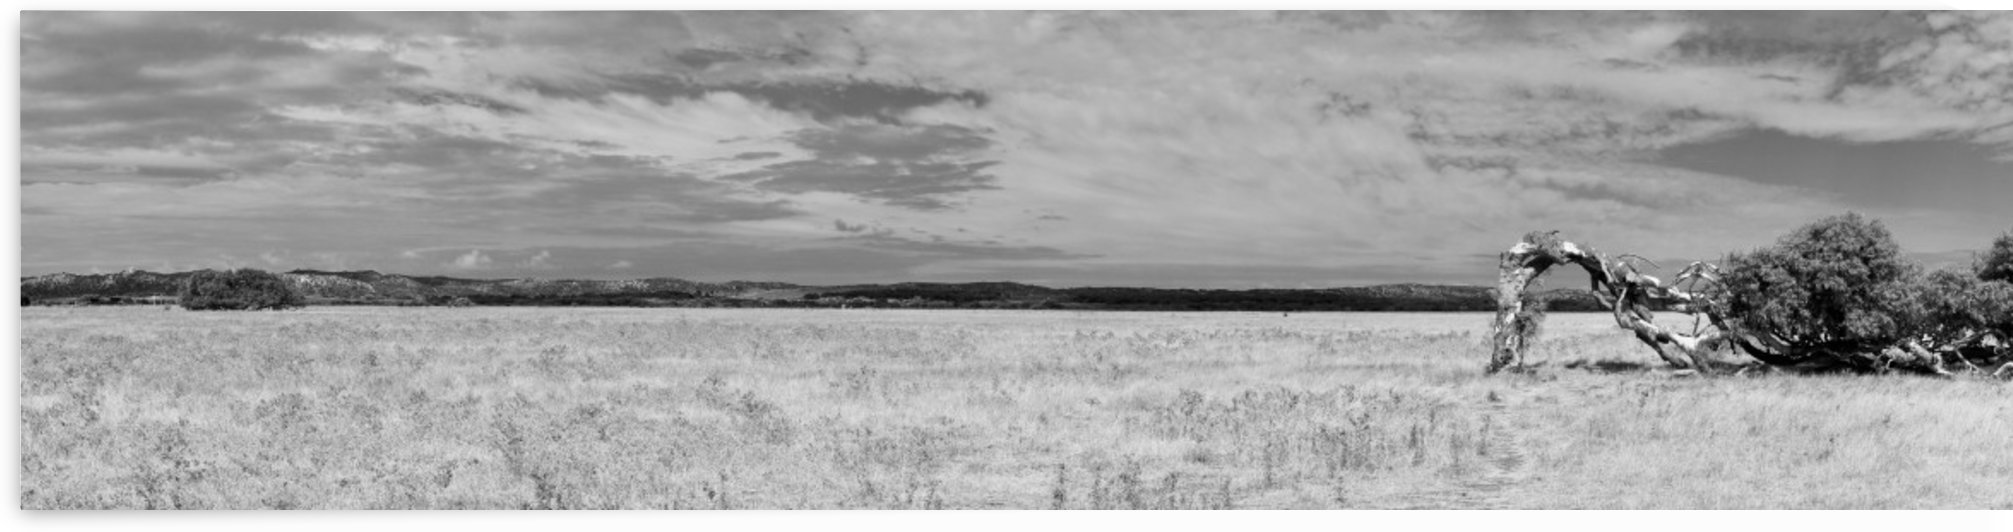 Panorama of Bended Tree Gras Dessert in B&W by Swiss Art by Patrick Kobler